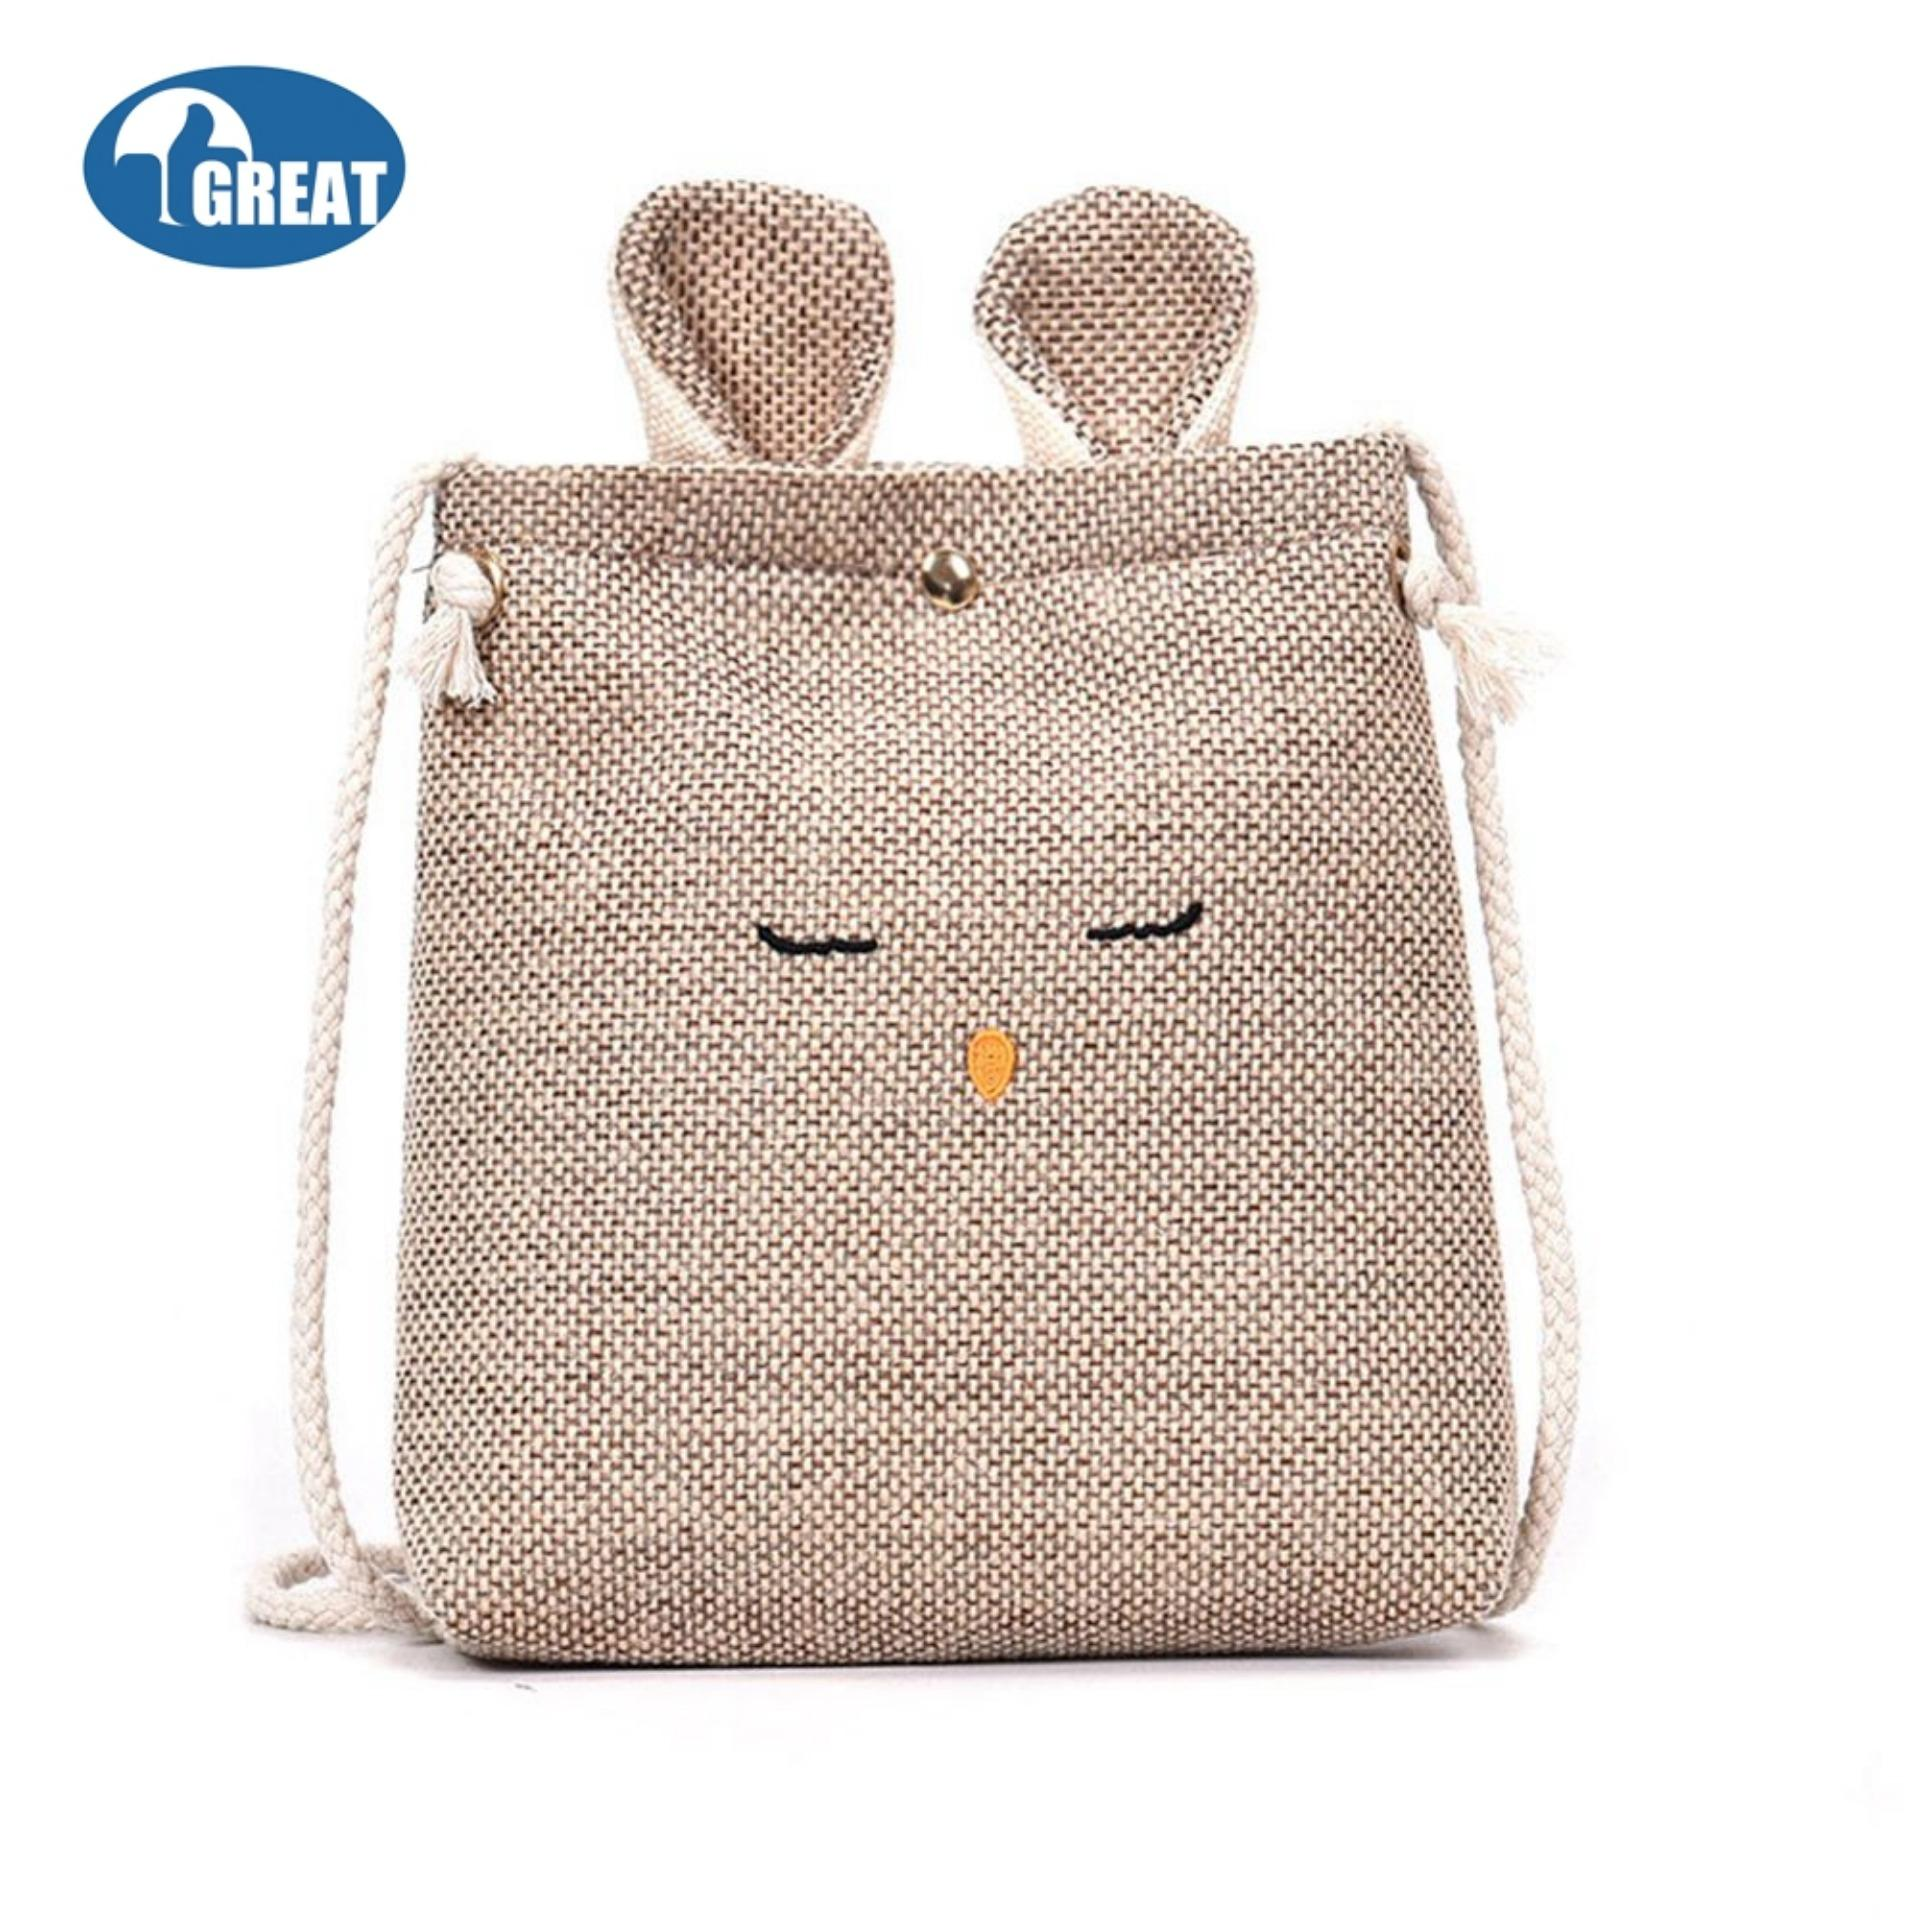 GoodGreat Girls Trendy Small Crossbody Purse Cat Ear Embroidered Emoji Cotton Shoulder Bag Pouch